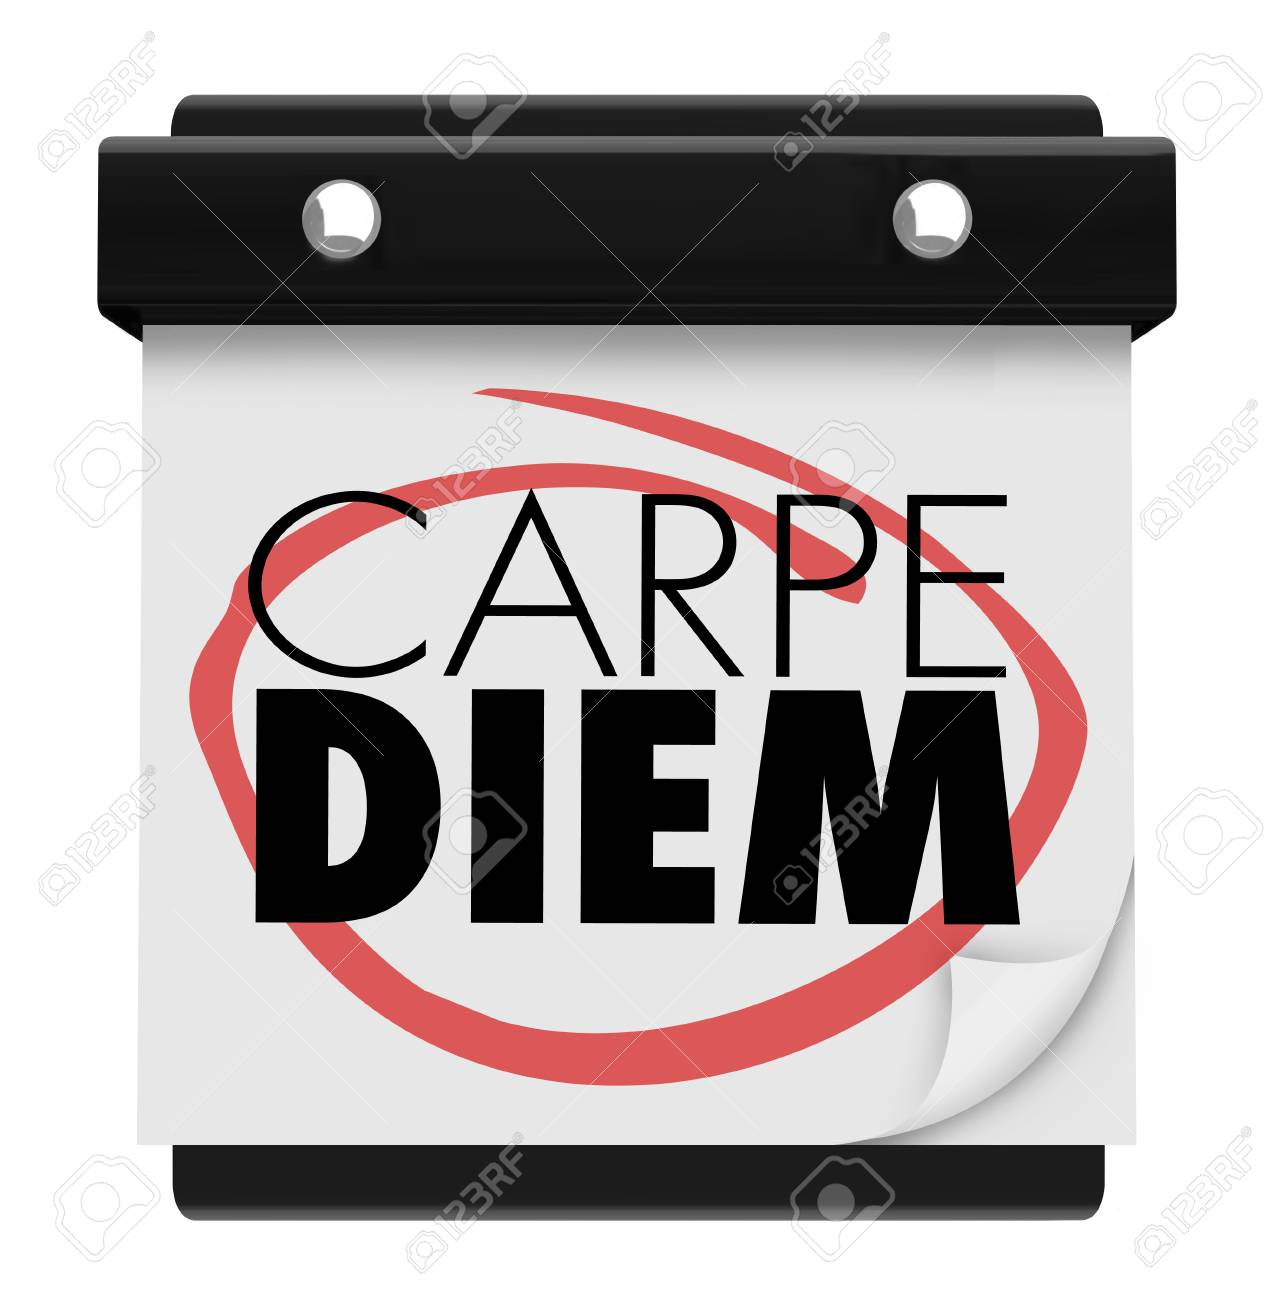 Carpe Diem Sieze The Day Wall Calendar Page 3d Illustration Stock